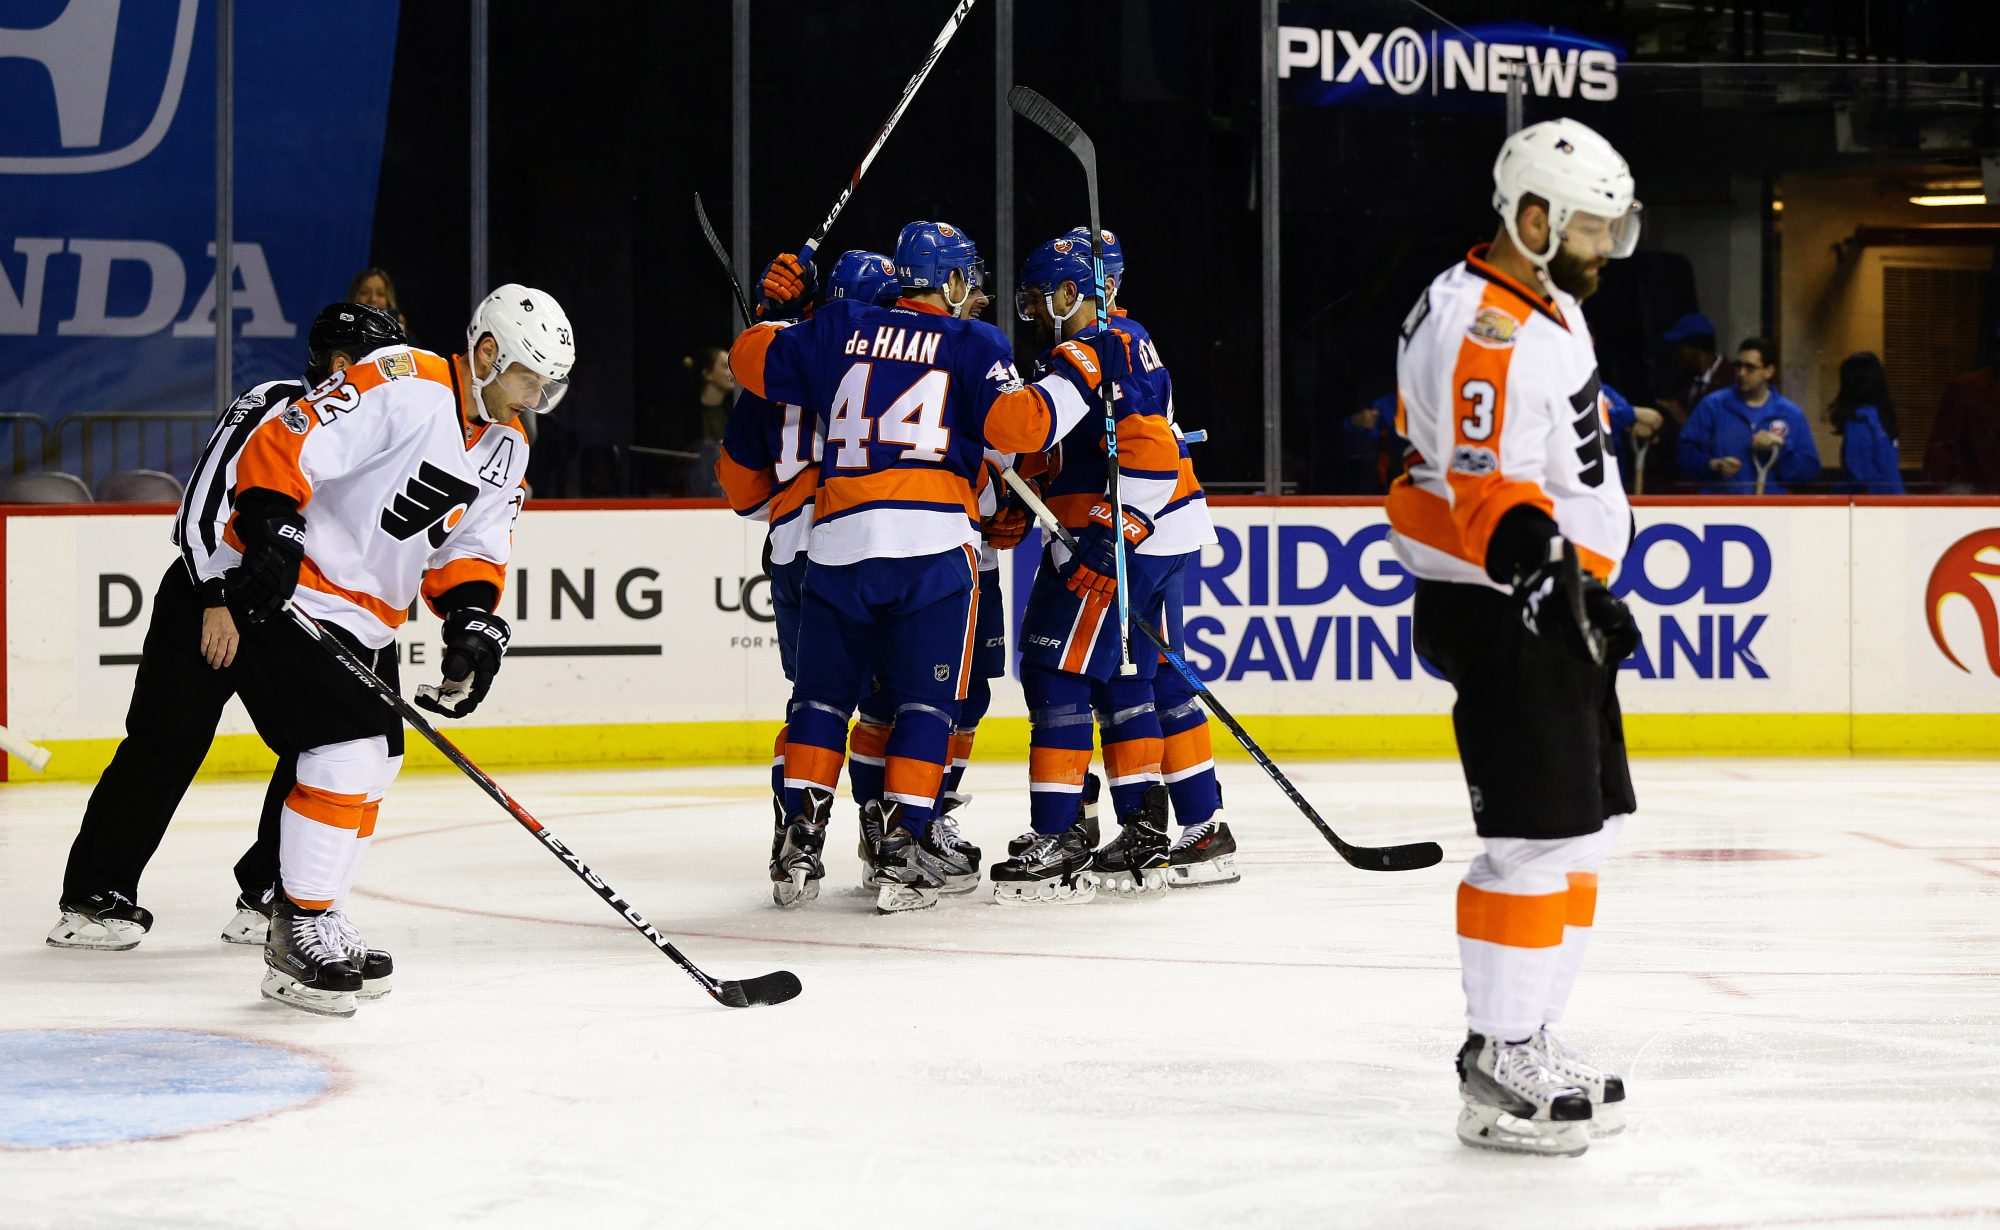 New York Islanders look to bolster defense in Philly, face troubled Flyers